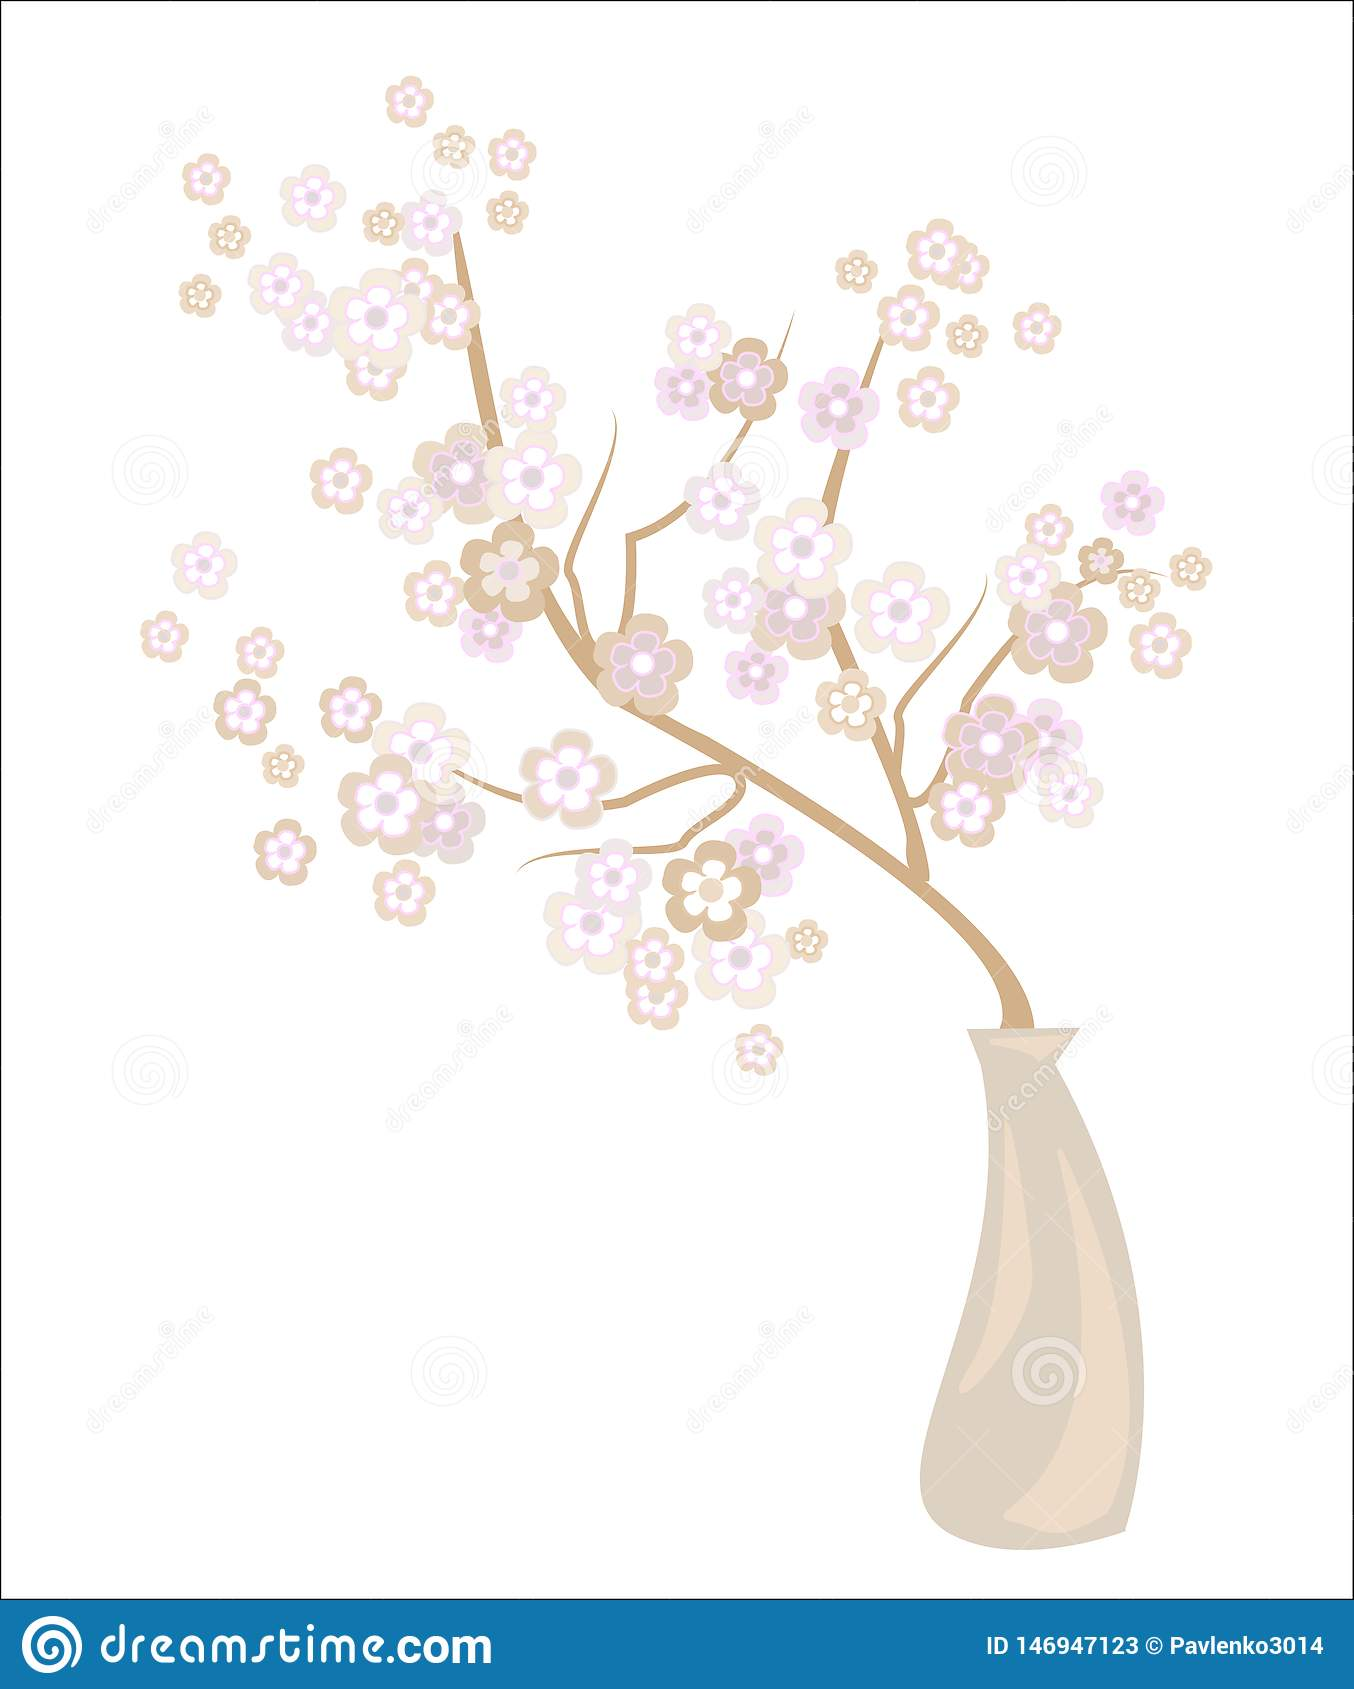 Romantic vase with a delicate cherry blossom. Exquisite petals and delicate floral fragrance. Decoration of a festive table and an